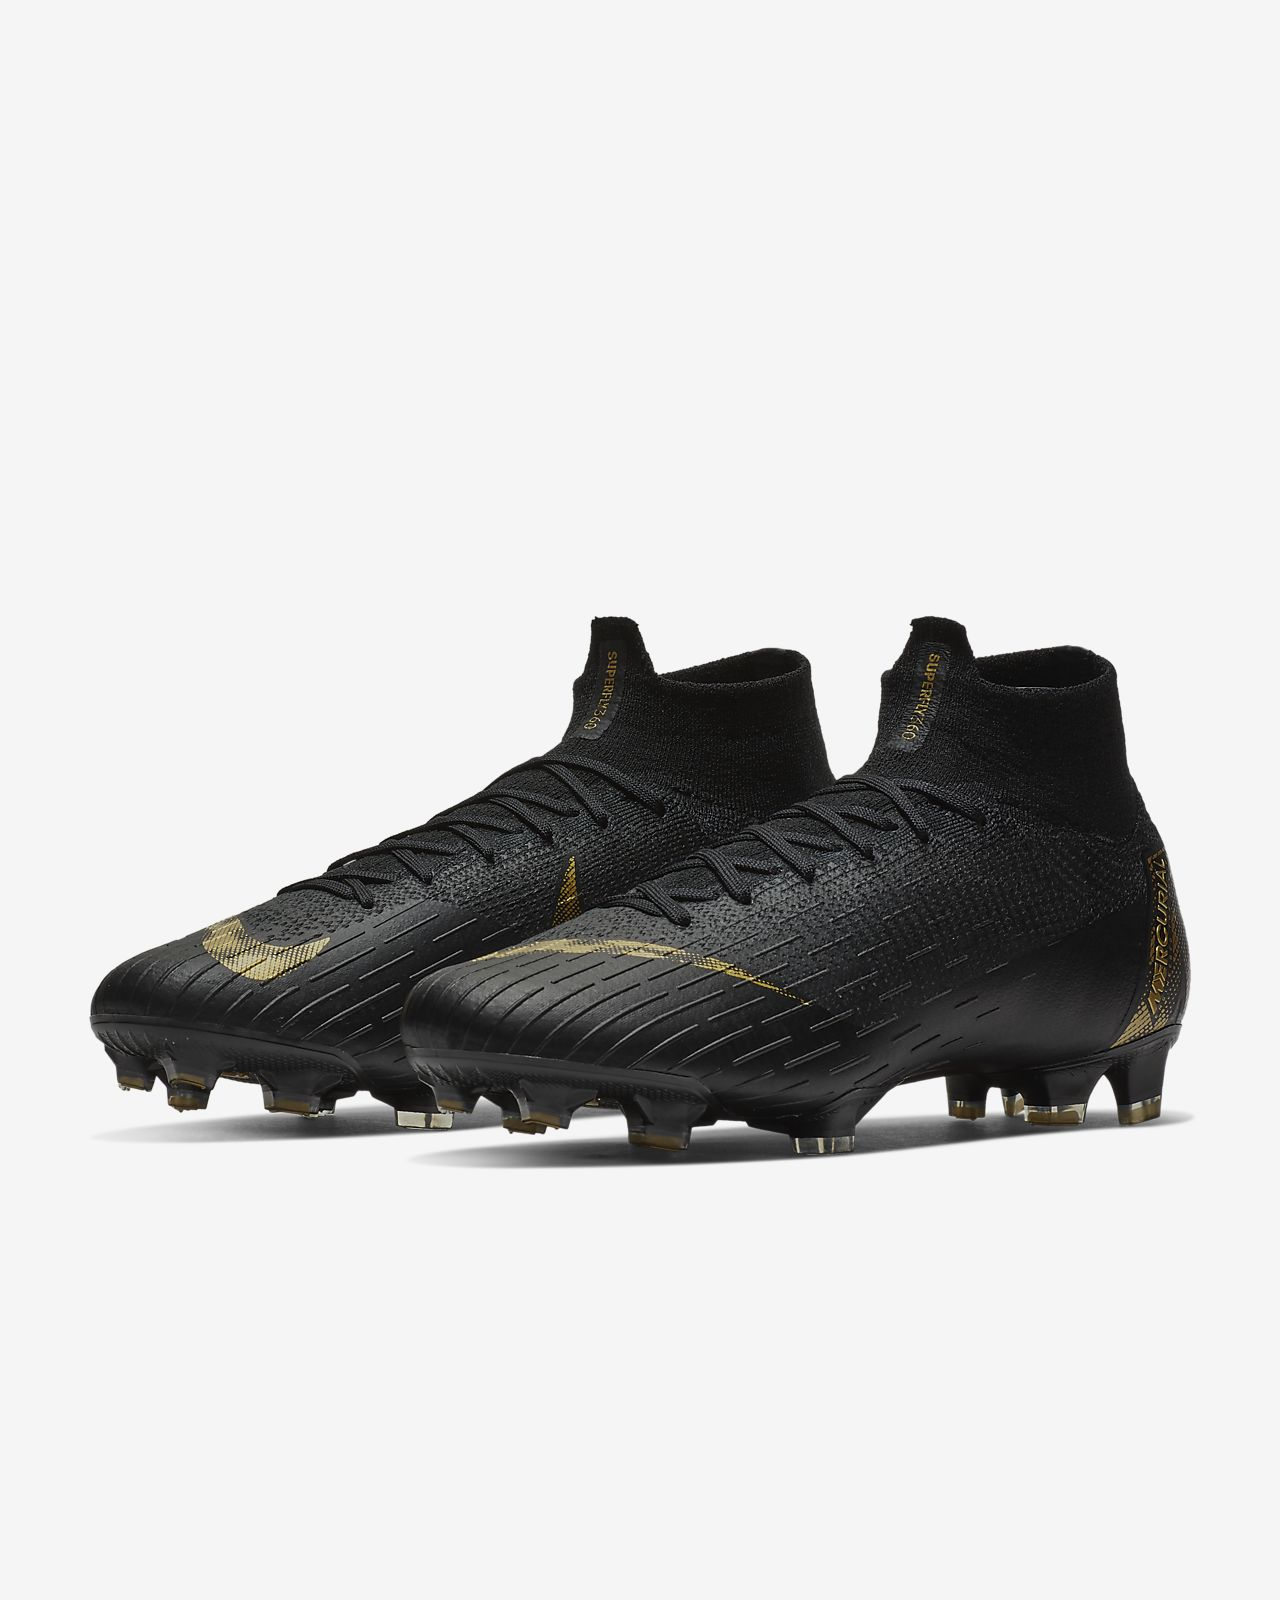 check out b27c6 b2e88 Nike Superfly 6 Elite FG Firm-Ground Soccer Cleat